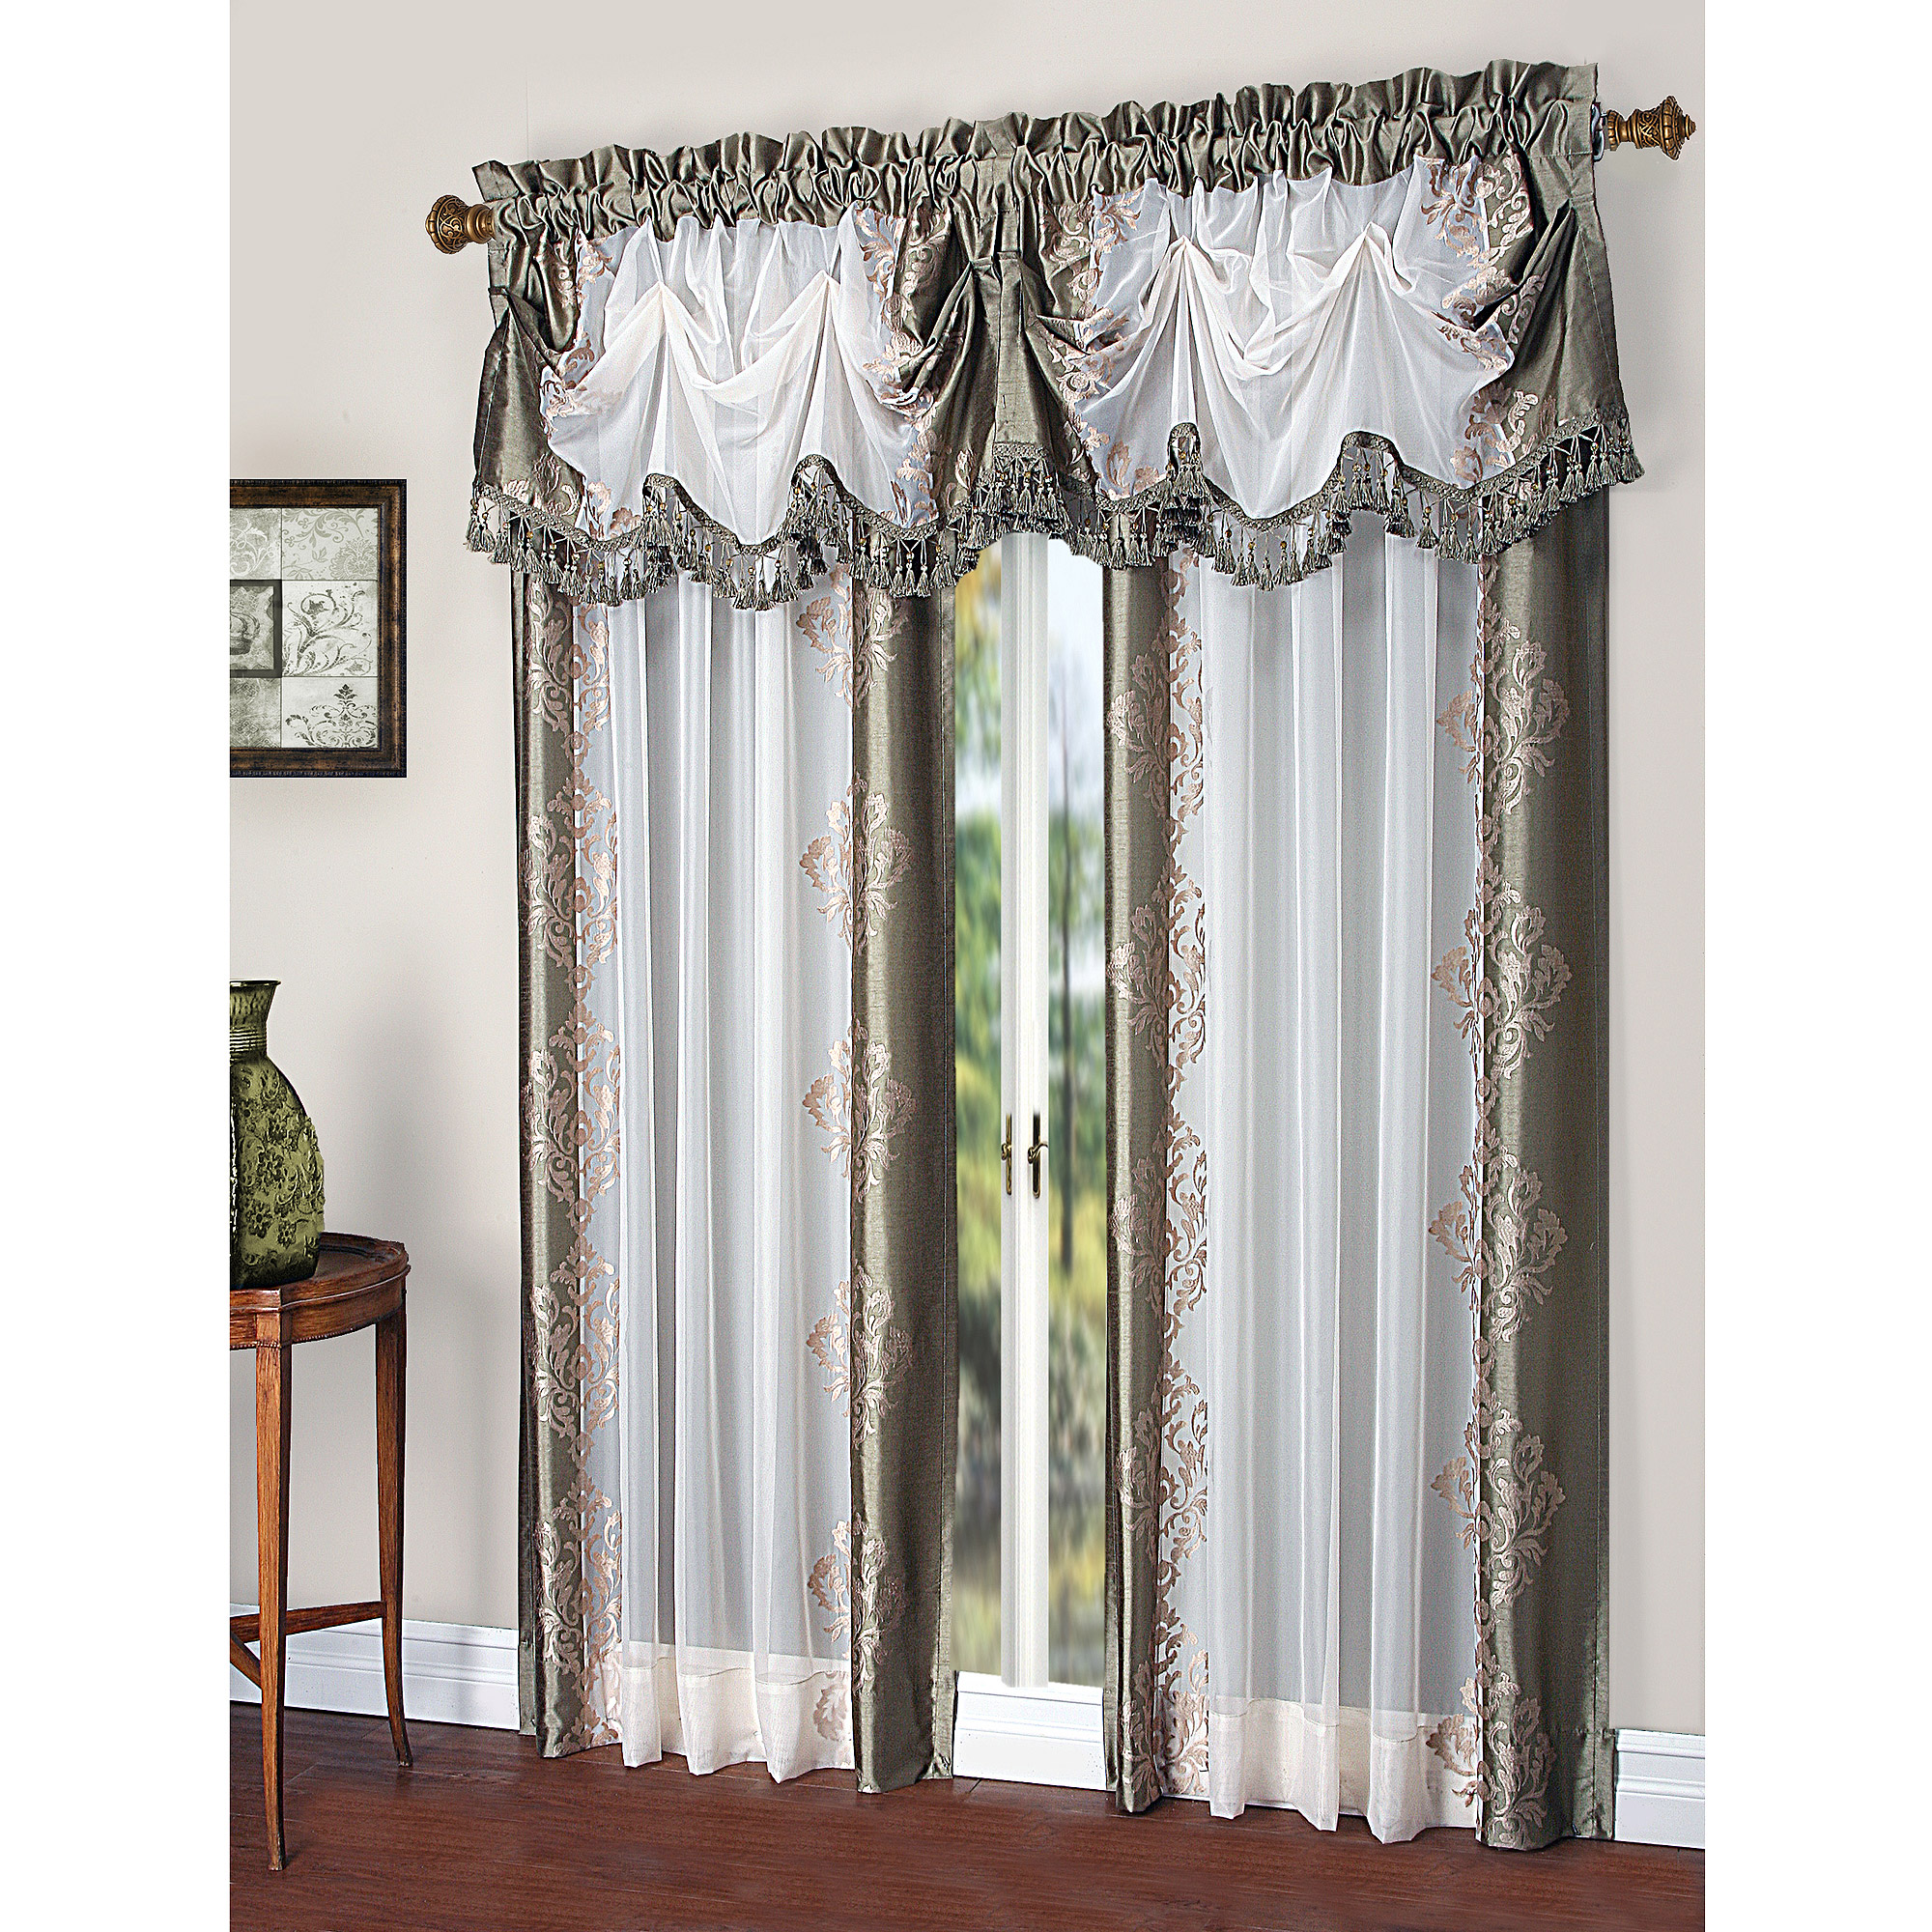 Faux Silk Curtains Danbury Embroidered Pieced Voile Faux Silk Polyester Curtain Panel